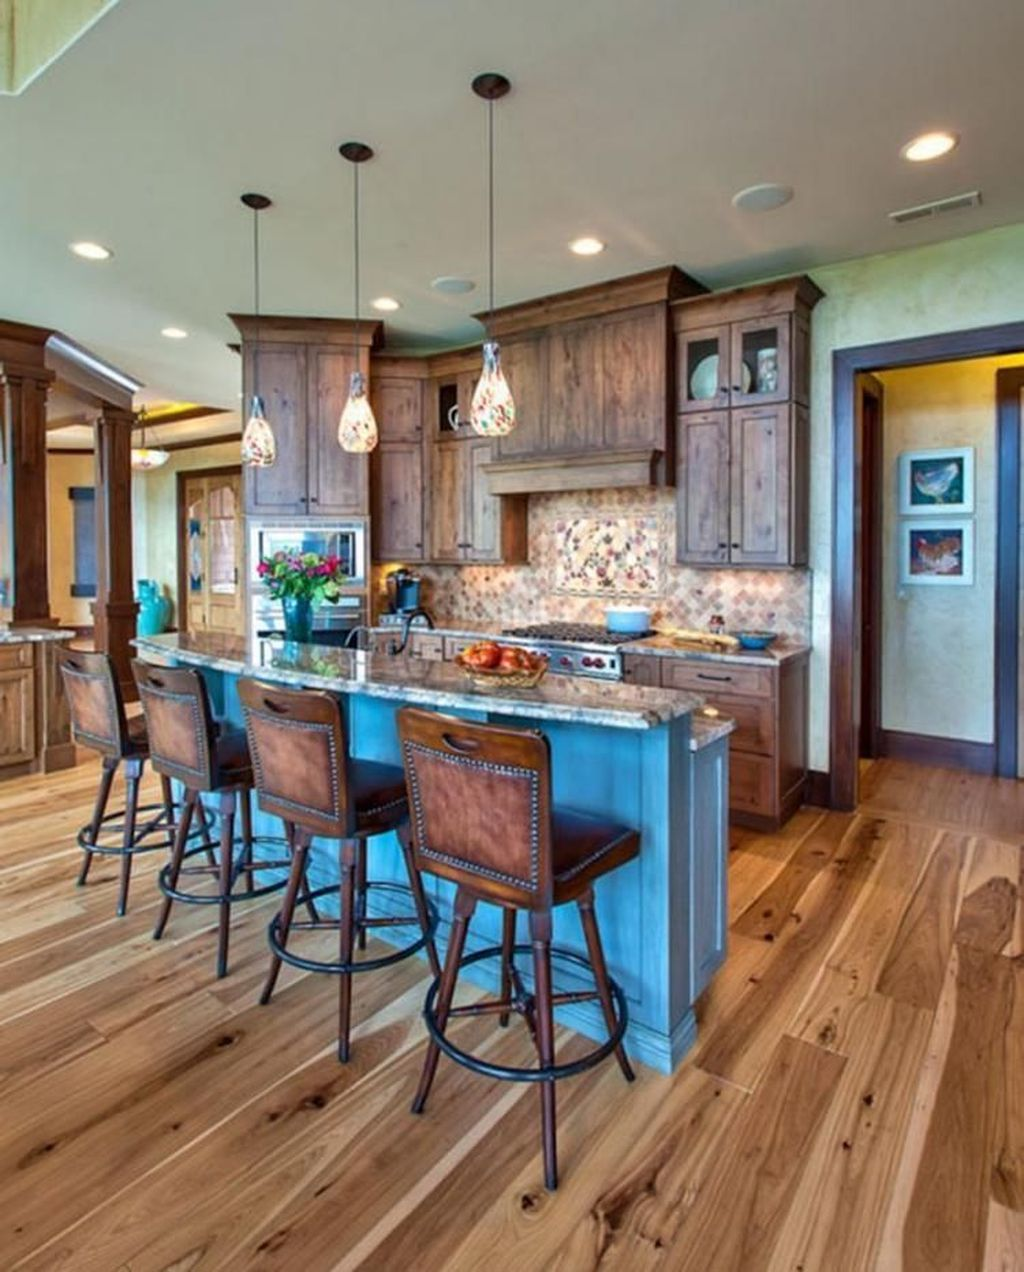 Cool 42 Lovely Rustic Western Style Kitchen Decorations Ideas More At Https Homishome Com 2018 10 0 Western Kitchen Decor Western Home Decor Western Kitchen